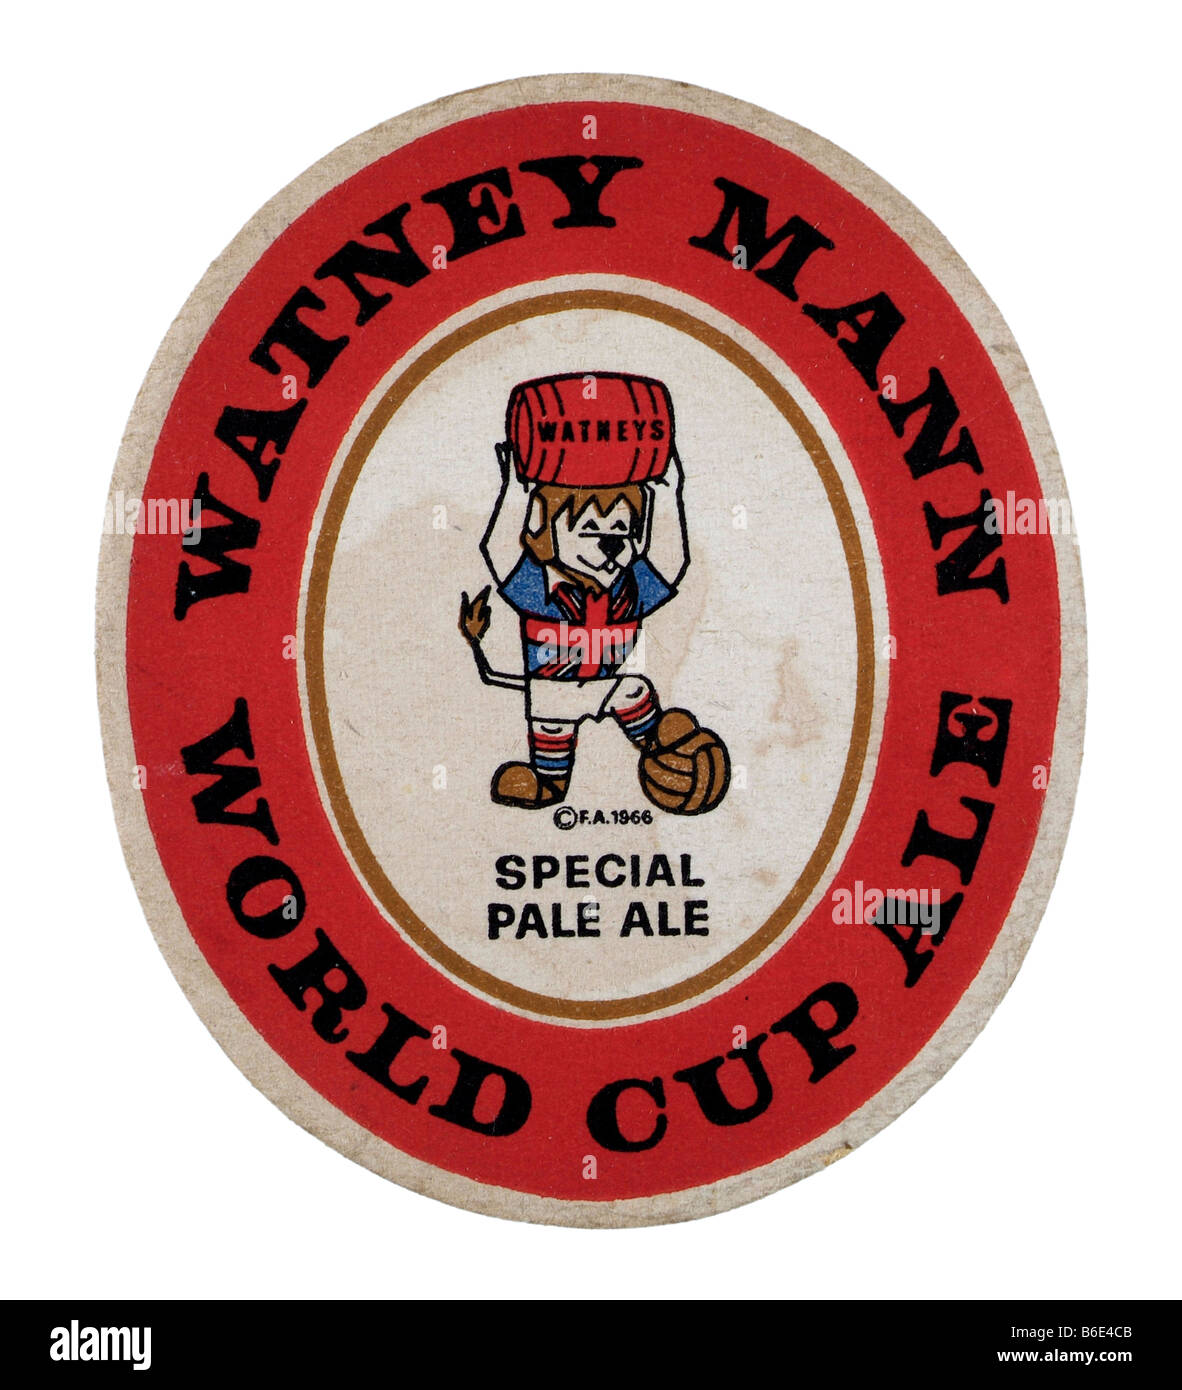 Watney Mann World Cup Ale Beermat Coaster Rest Glasses